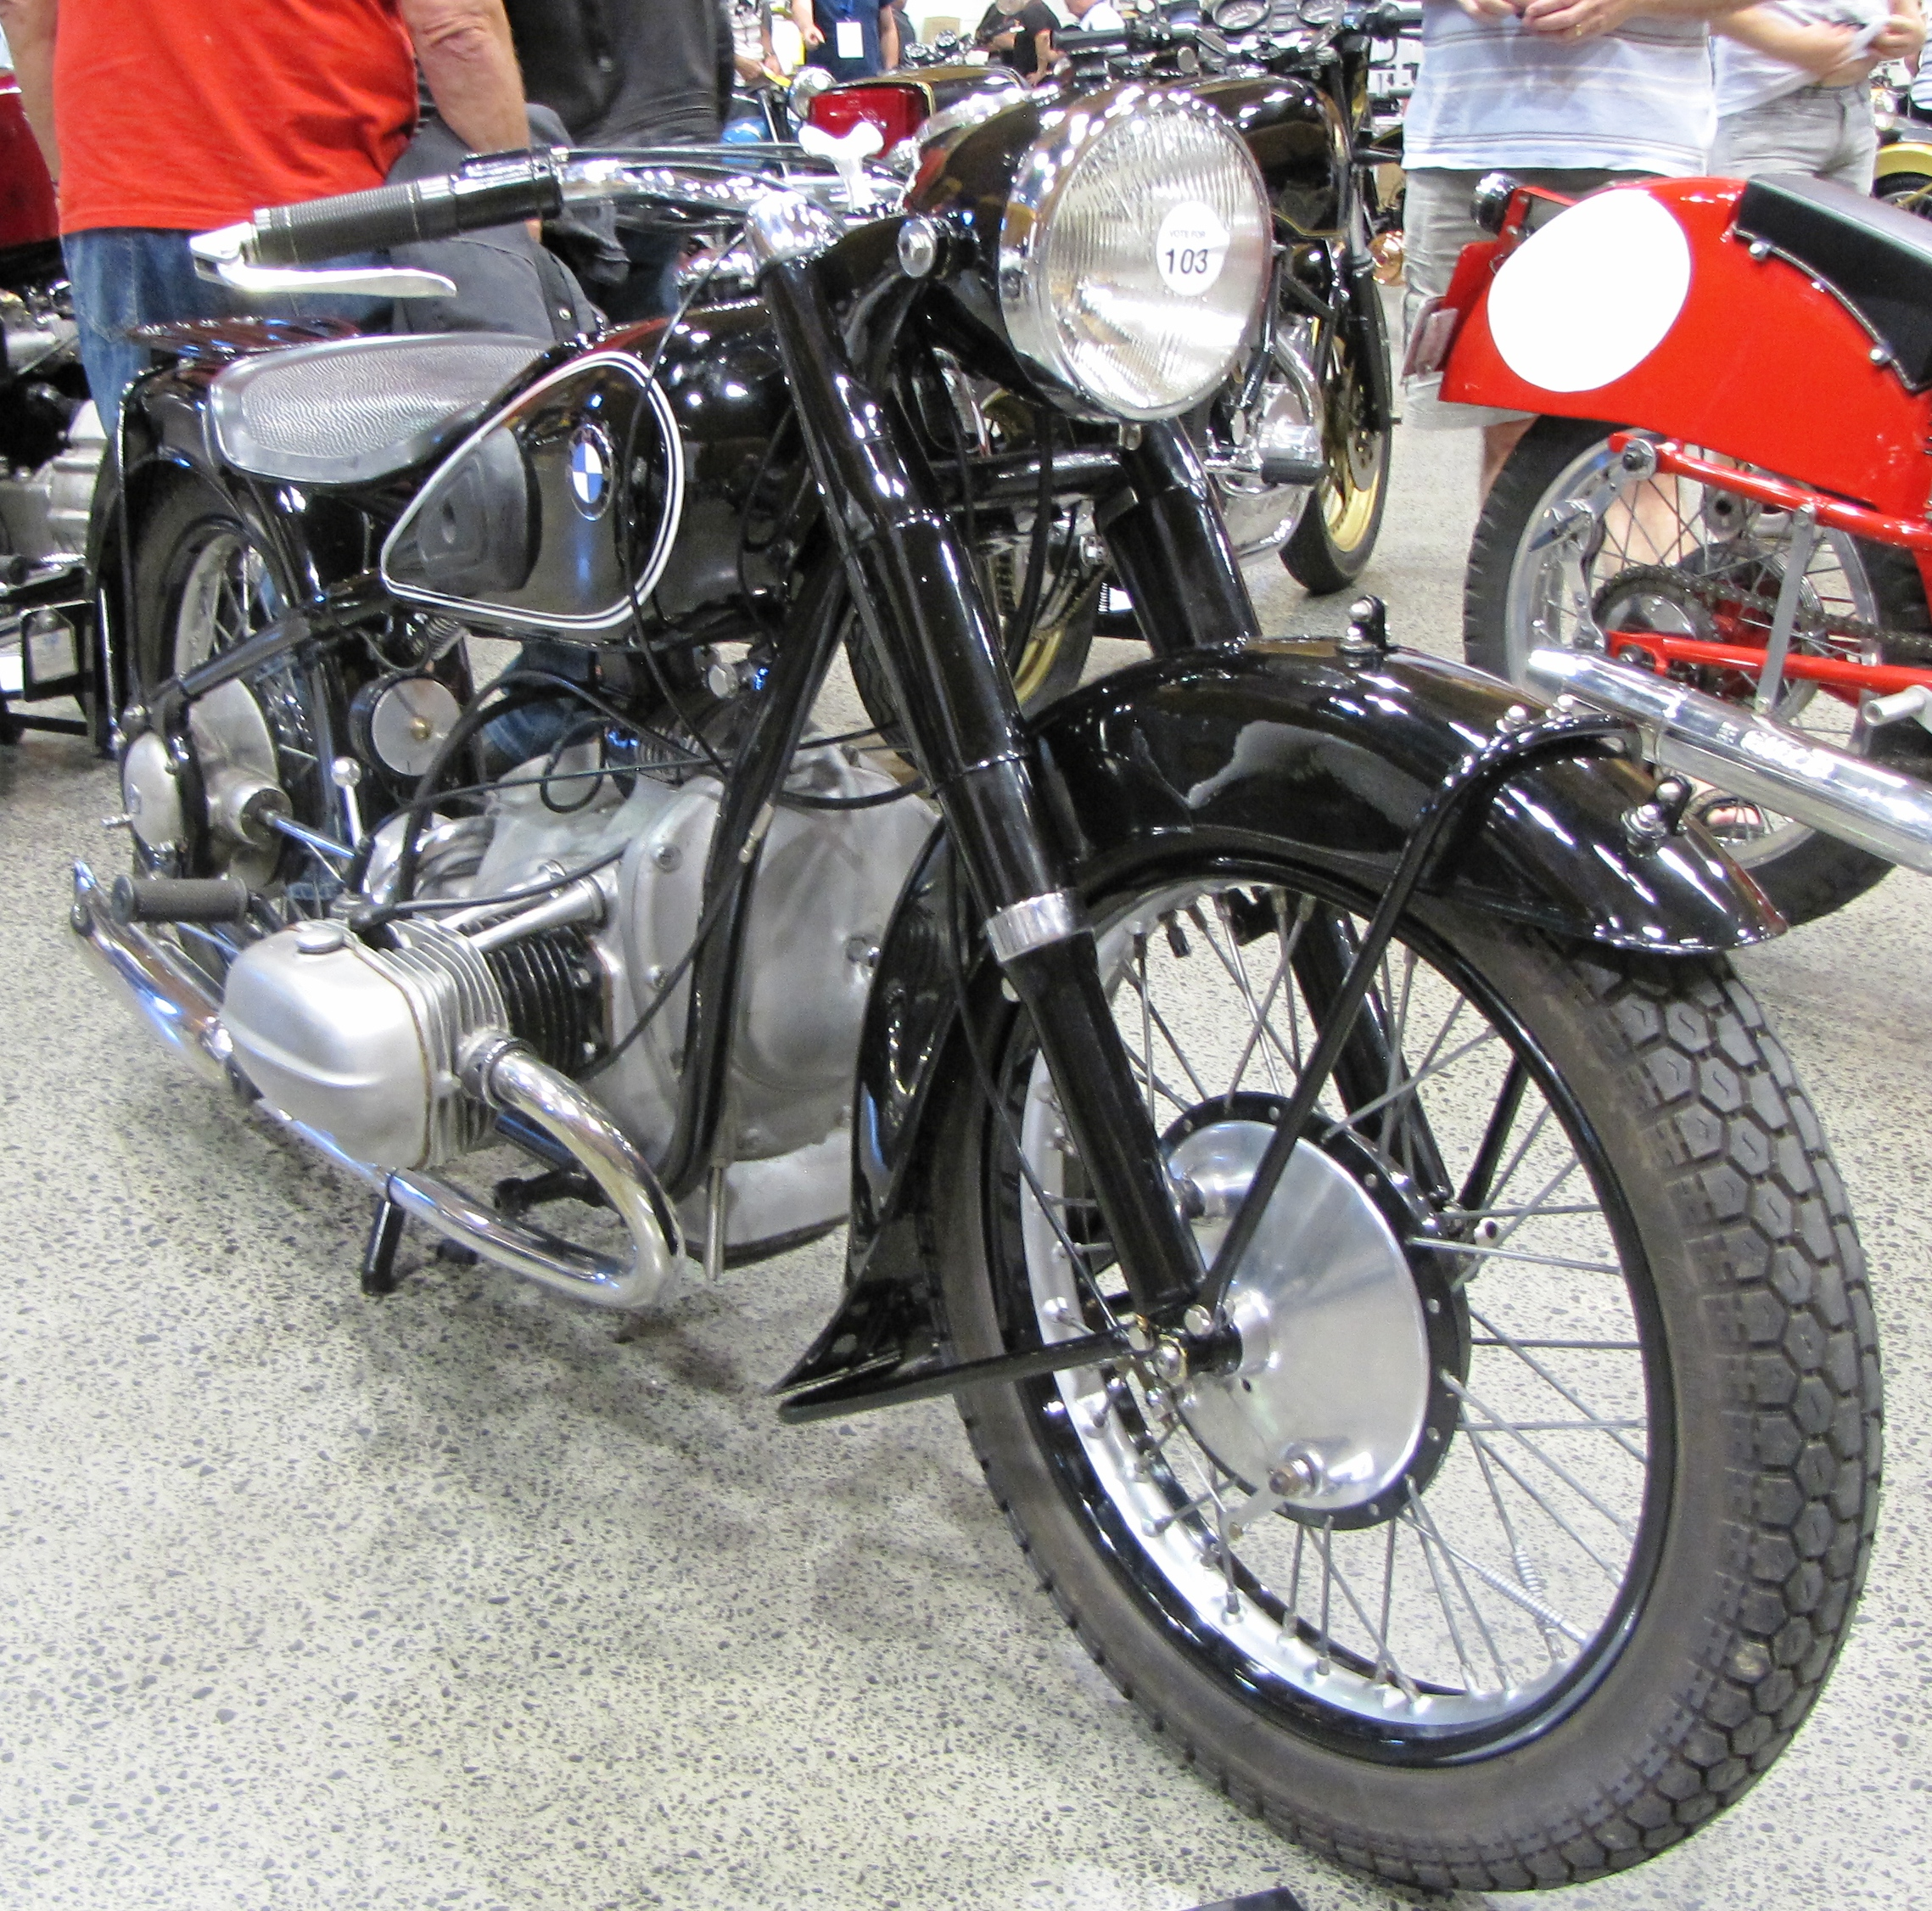 File:1936 BMW R5 motorcycle JPG - Wikimedia Commons